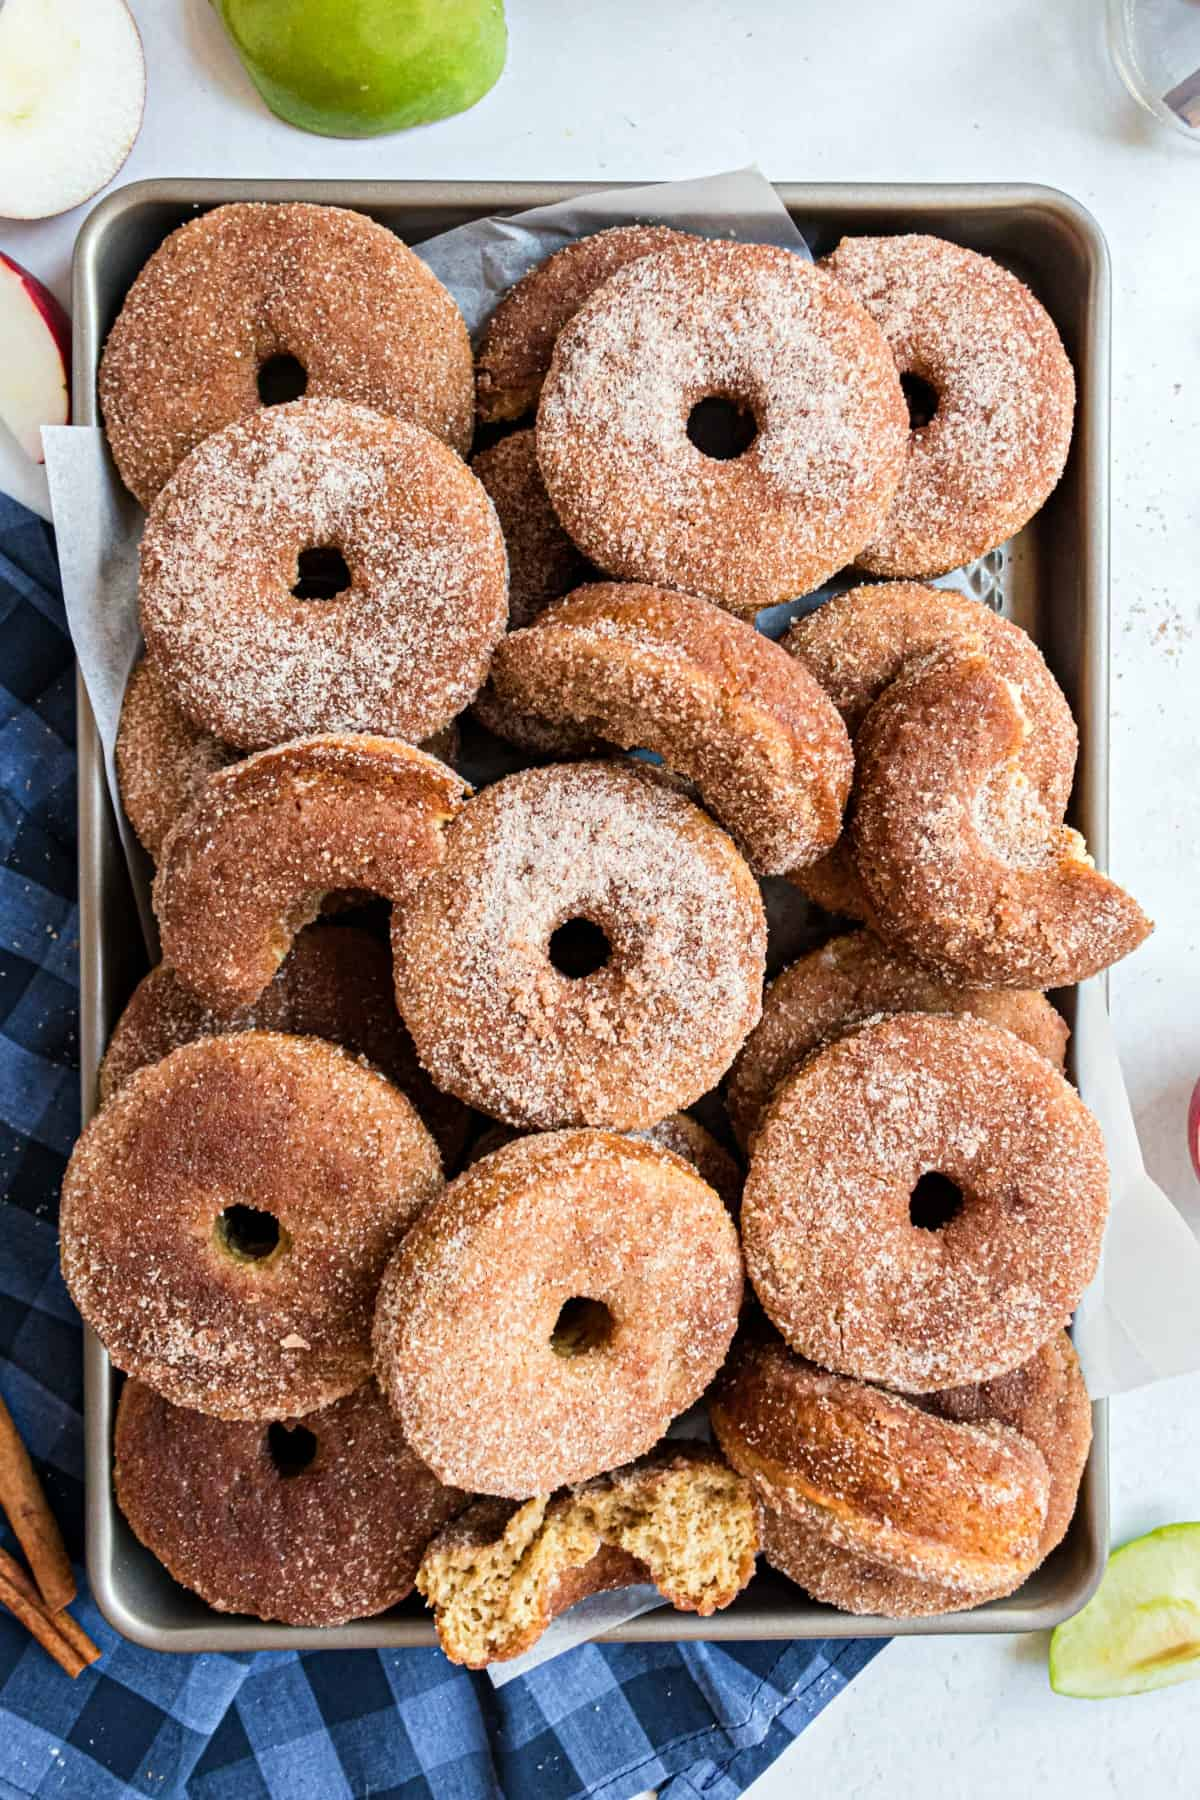 Baking sheet filled with apple cider donuts to serve.